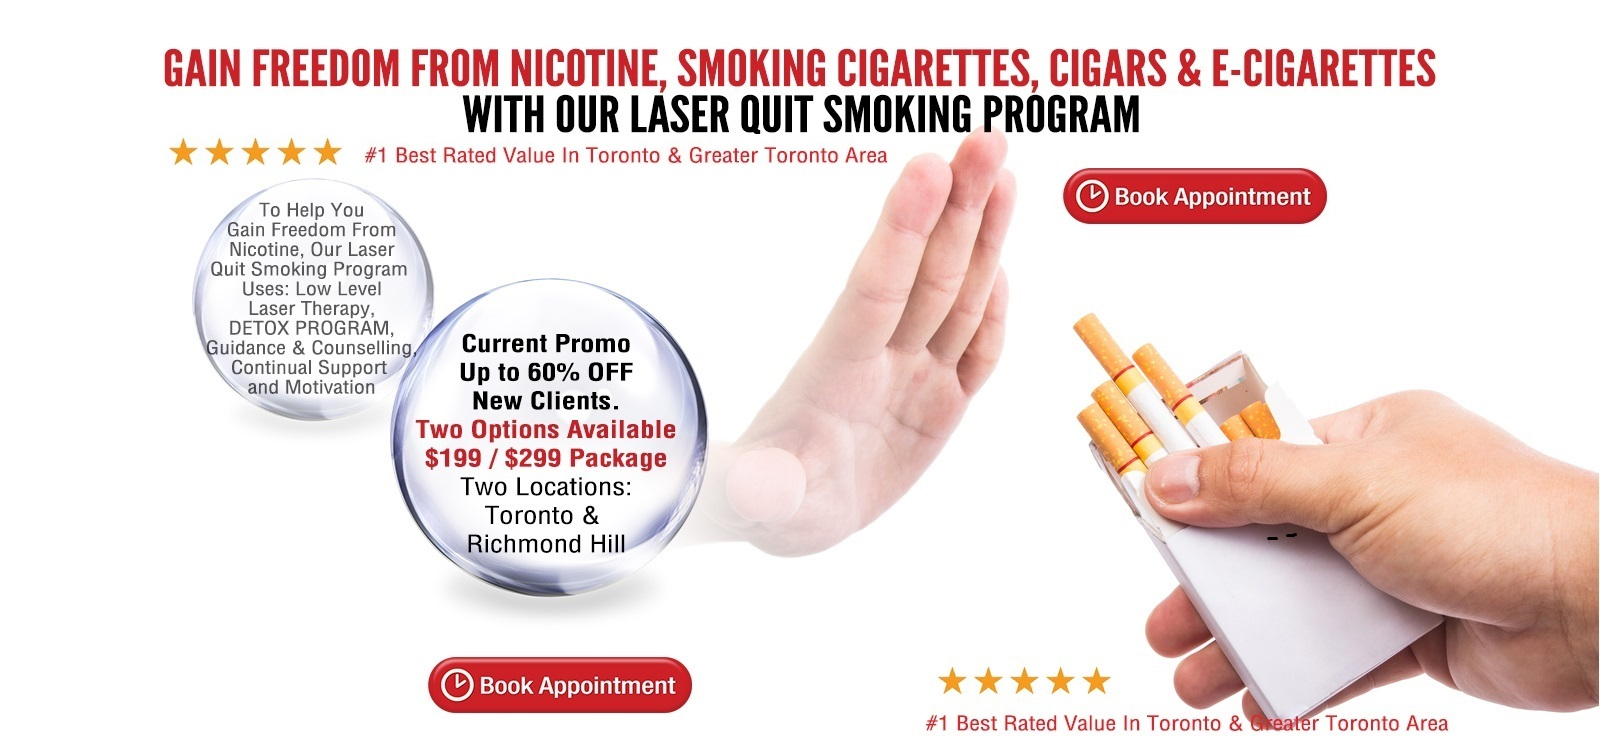 Laser Stop Smoking Offer 2